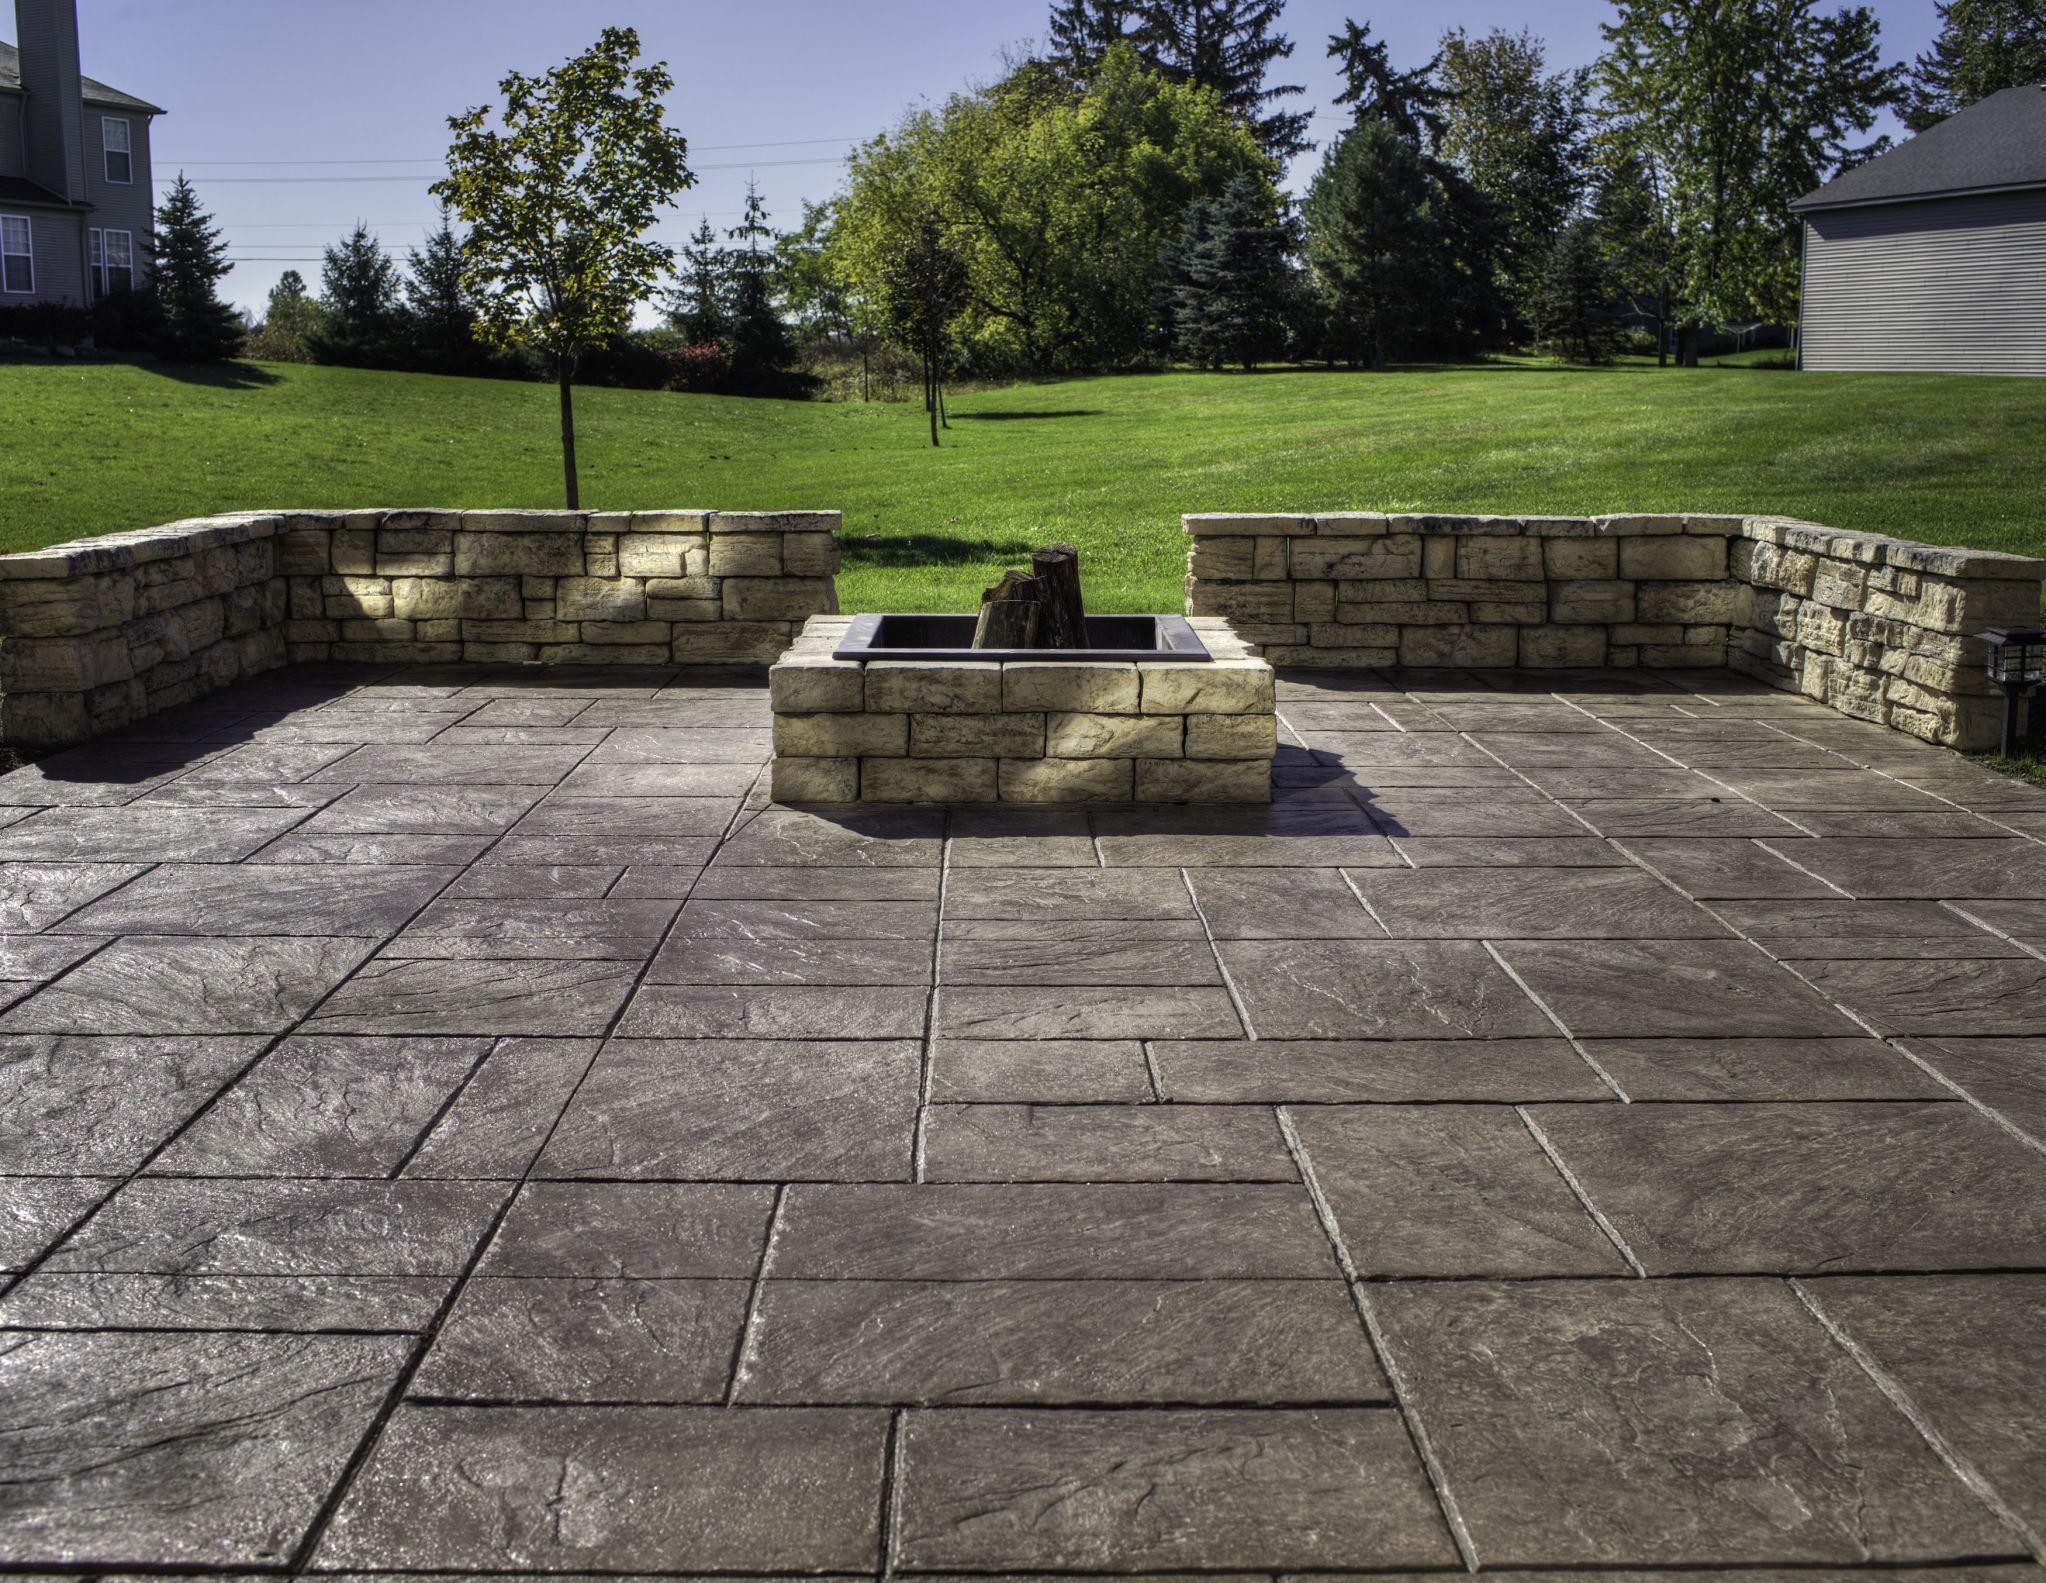 Wonderful Stamped Concrete Stamped Concrete Patio Cost, Poured Concrete Patio, Concrete  Patio Designs, Concrete